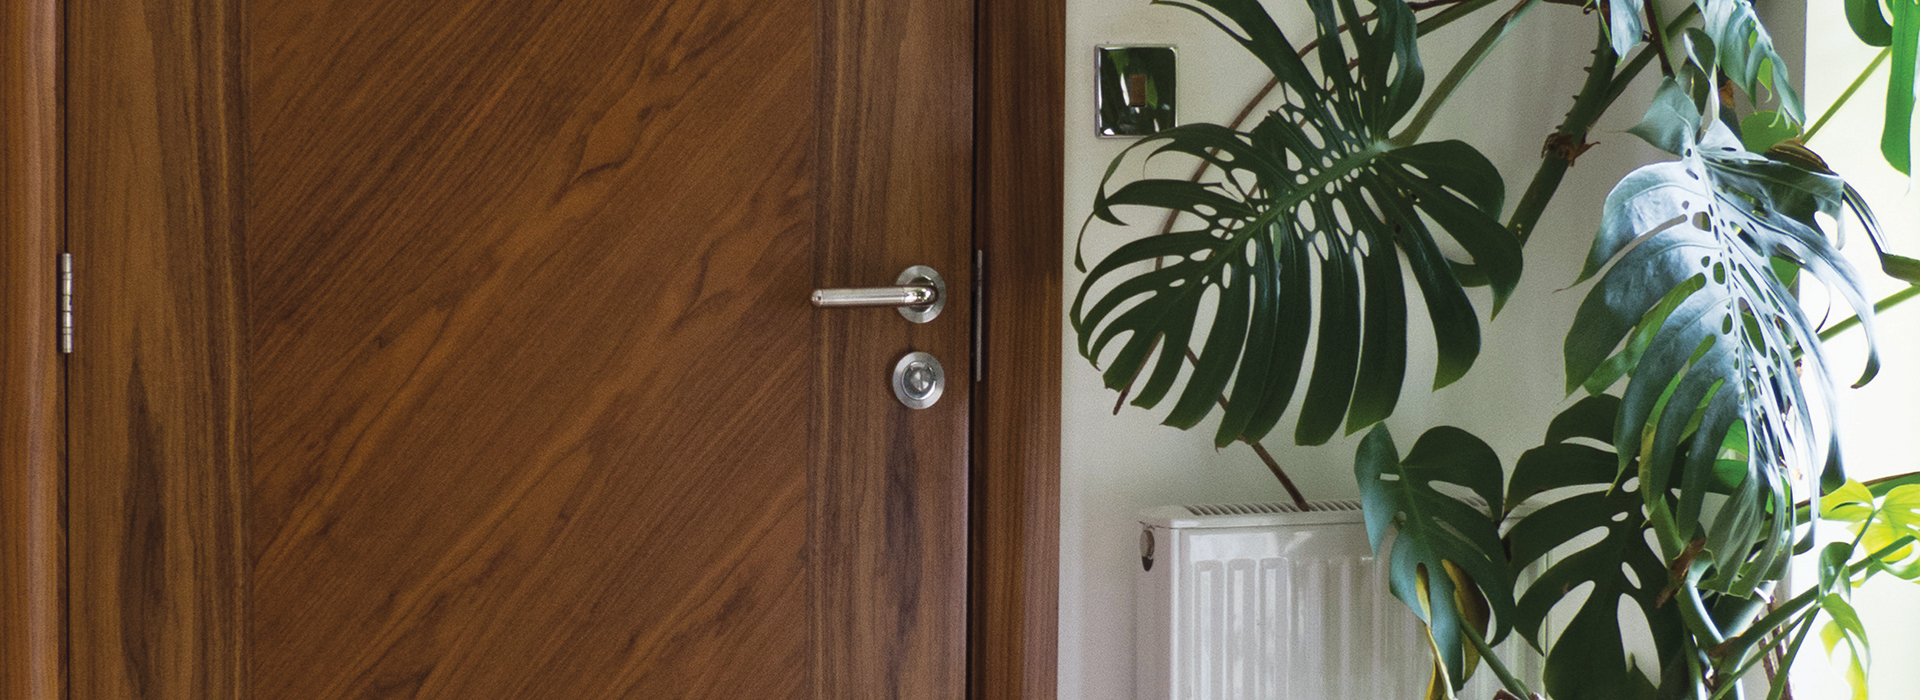 Walnut door with cheeseplant